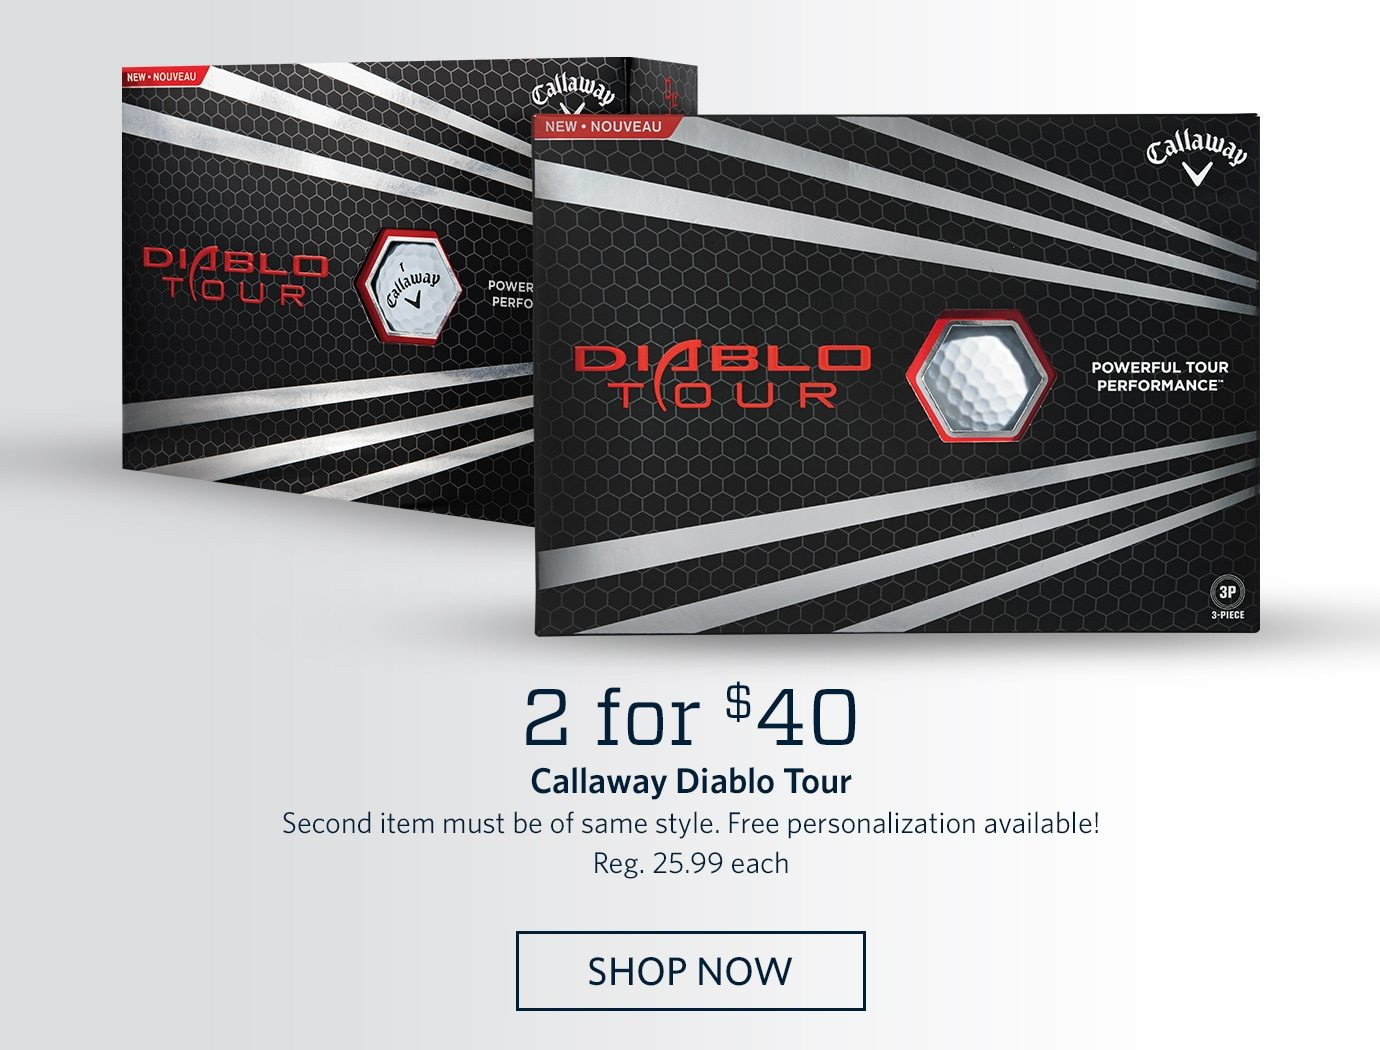 2 for $40 Callaway Diablo Tour | Second item must be of same style. Free personalization available! Reg. 25.99 each | SHOP NOW